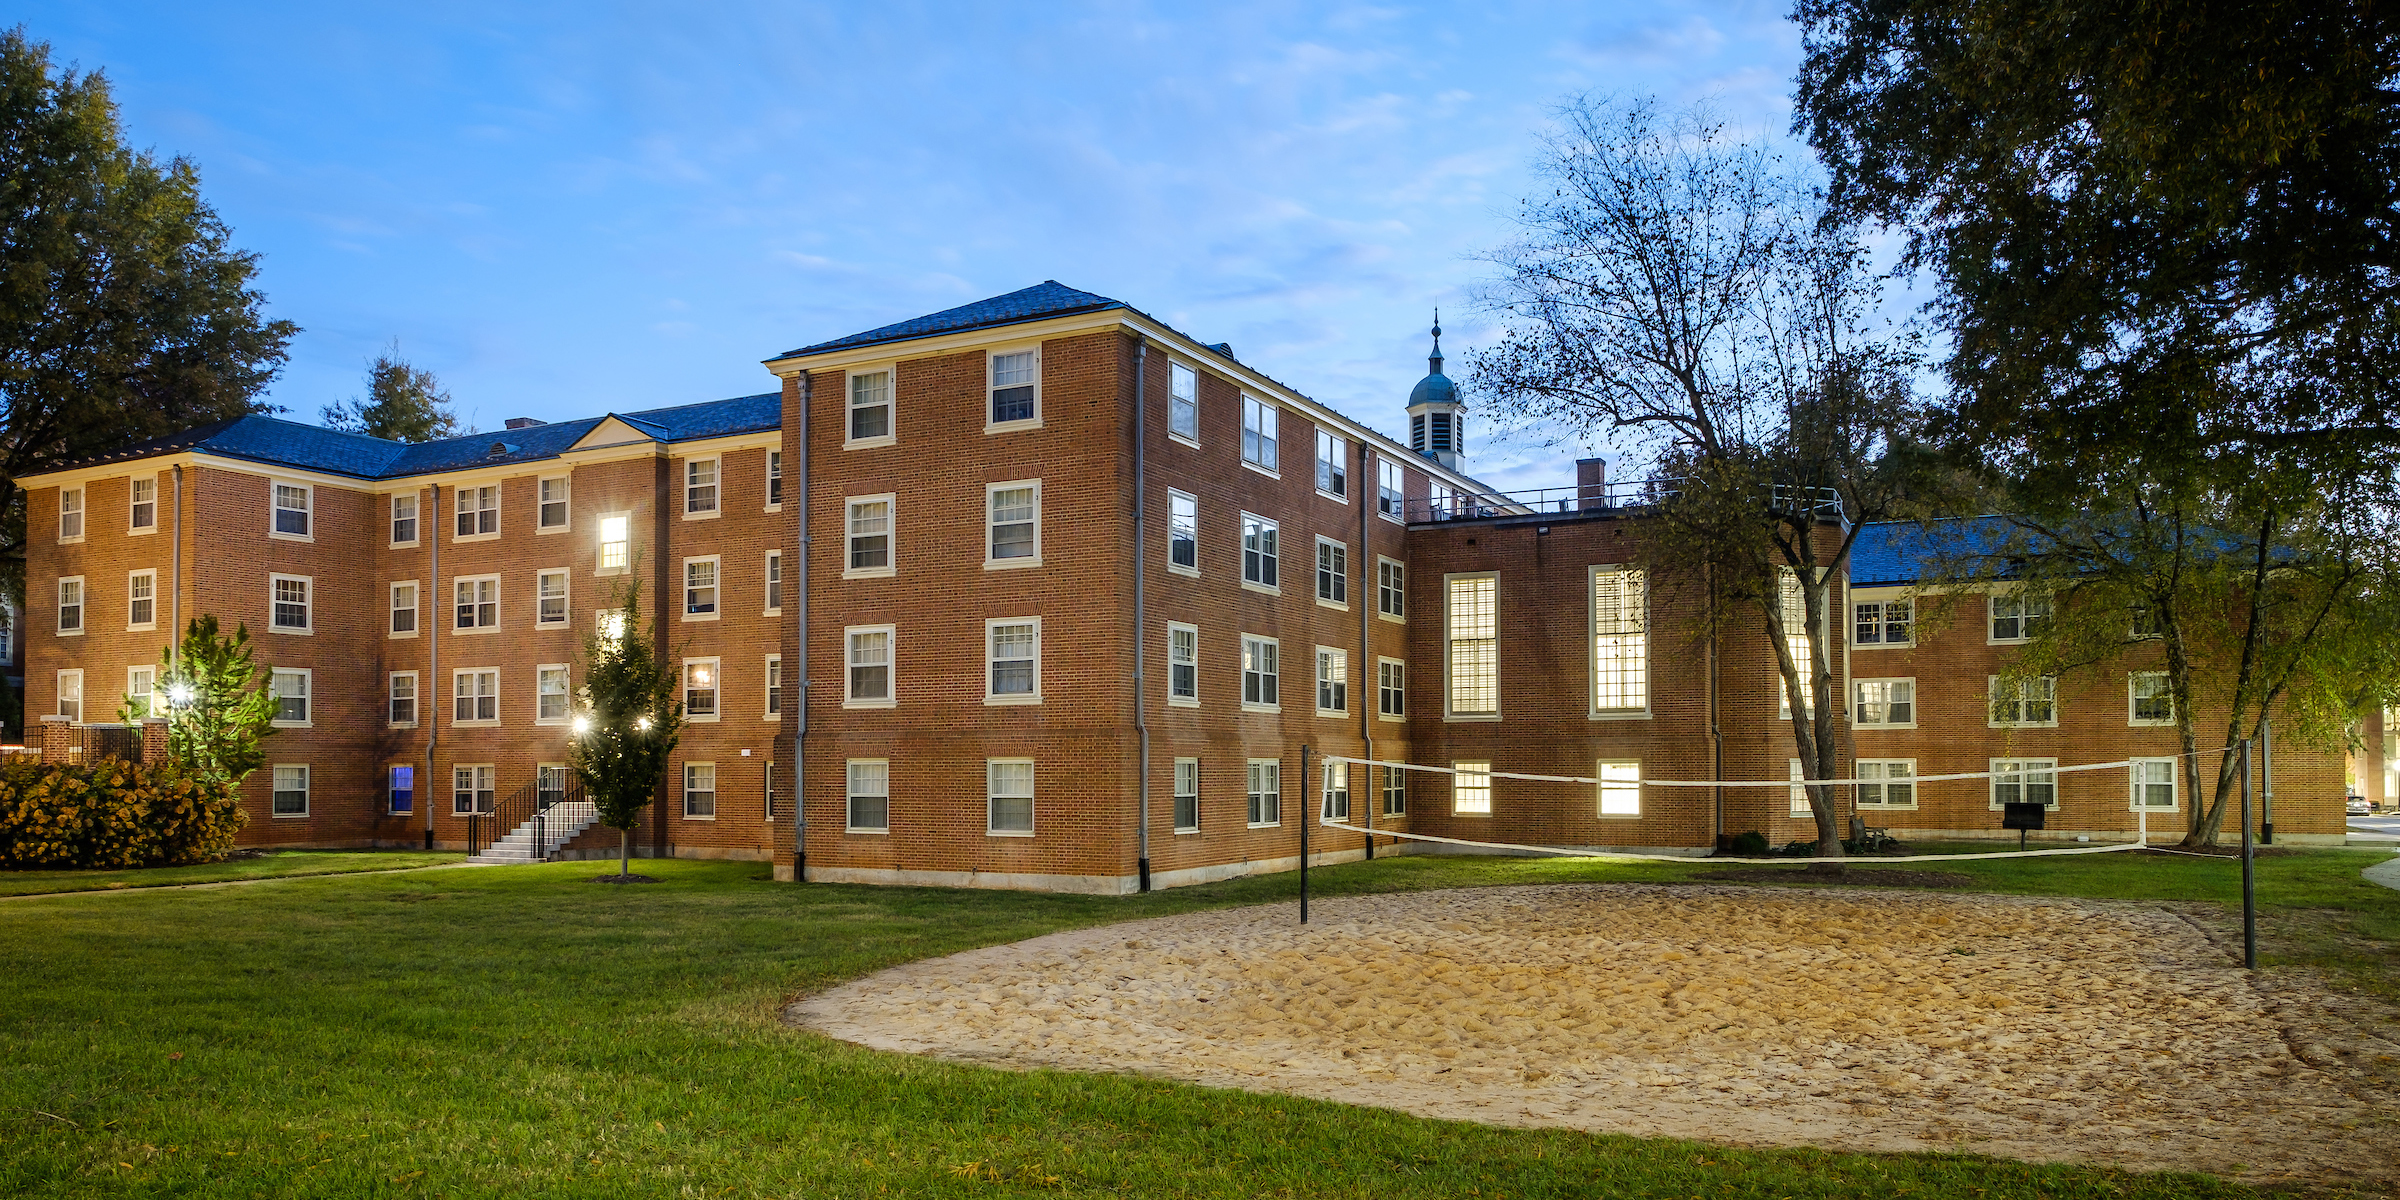 The rear courtyard of Johnson Residence Hall